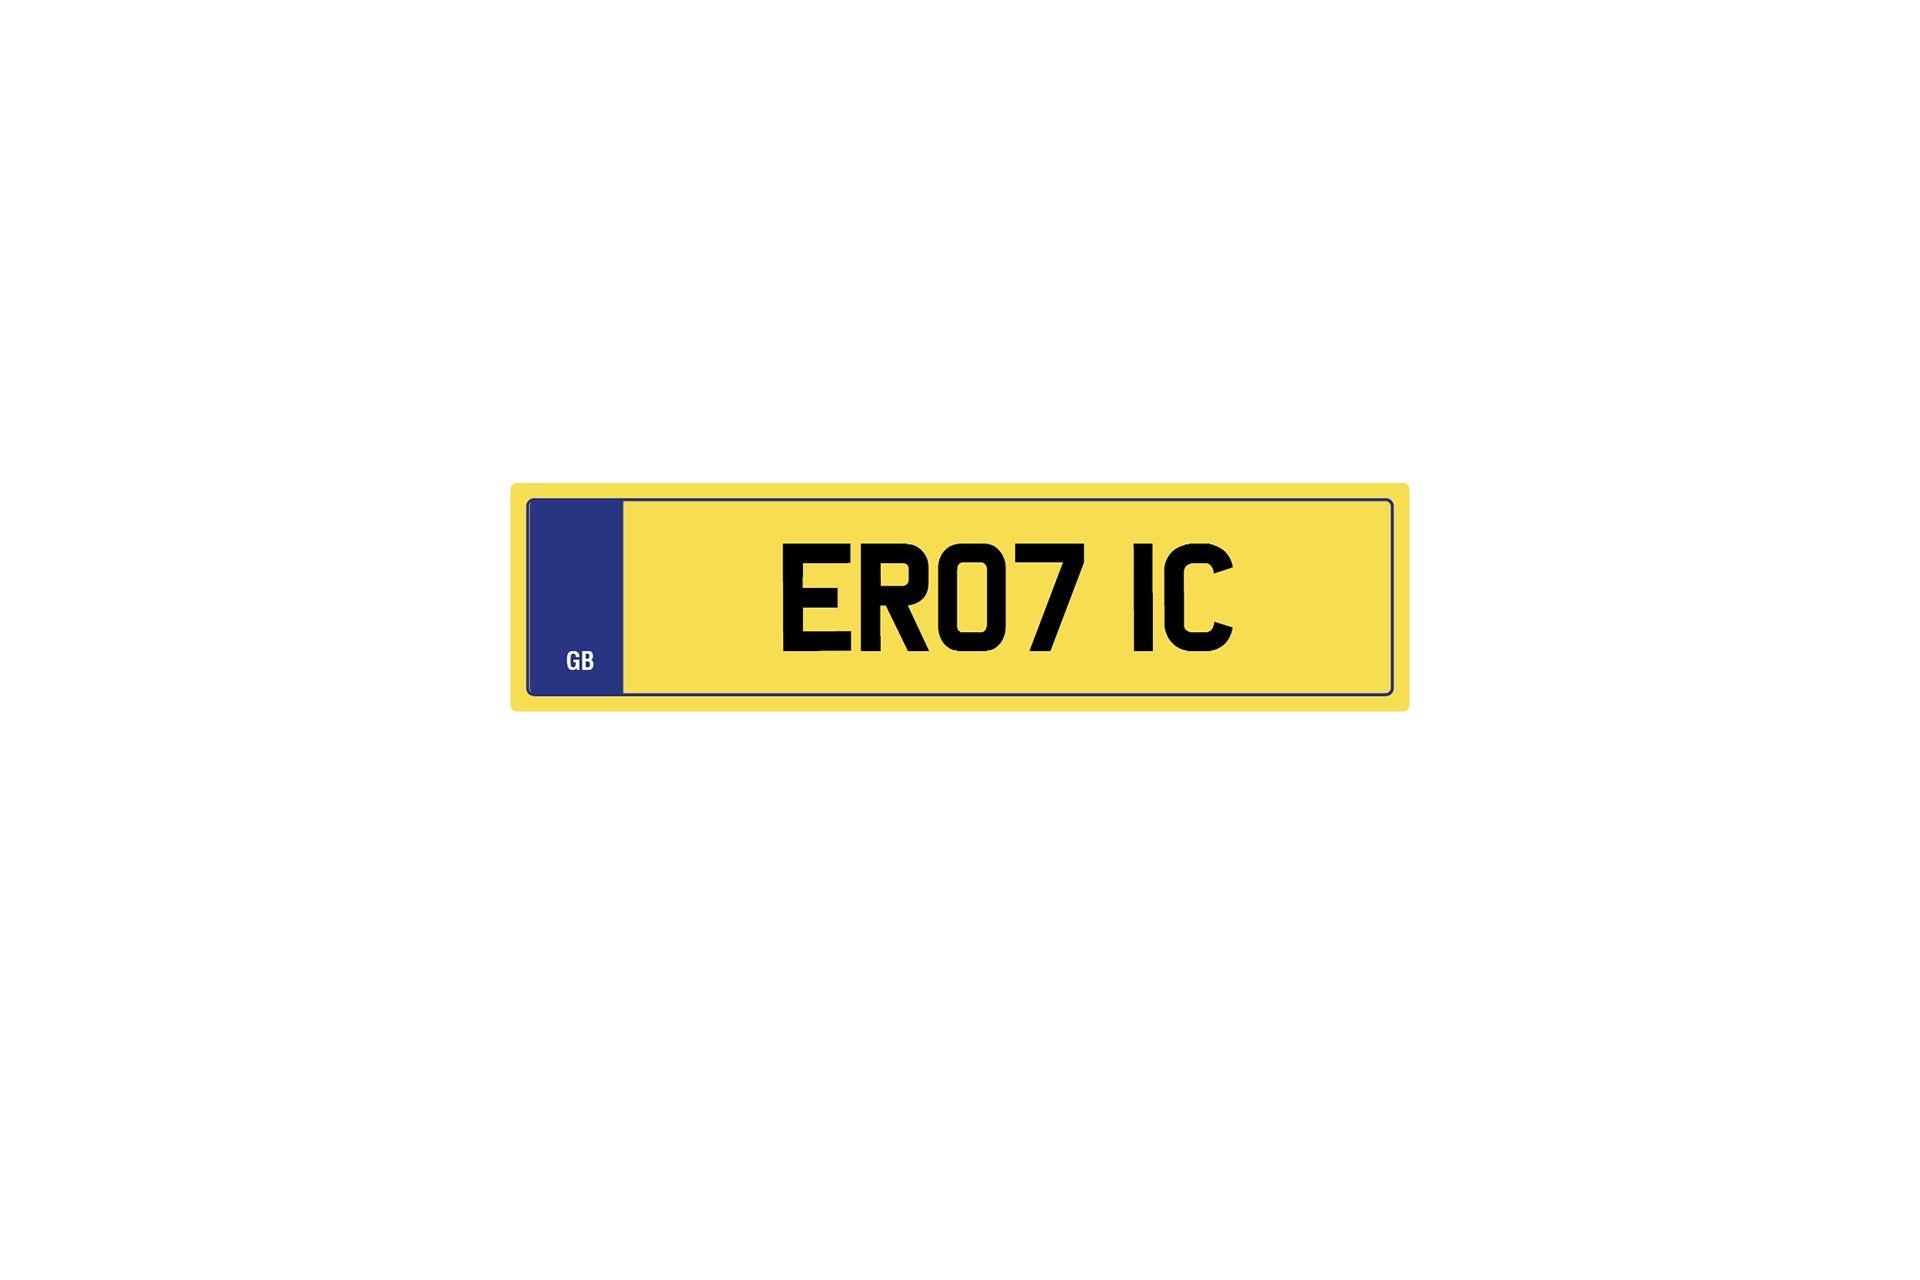 Private Plate Ero7 Ic by Kahn - Image 237